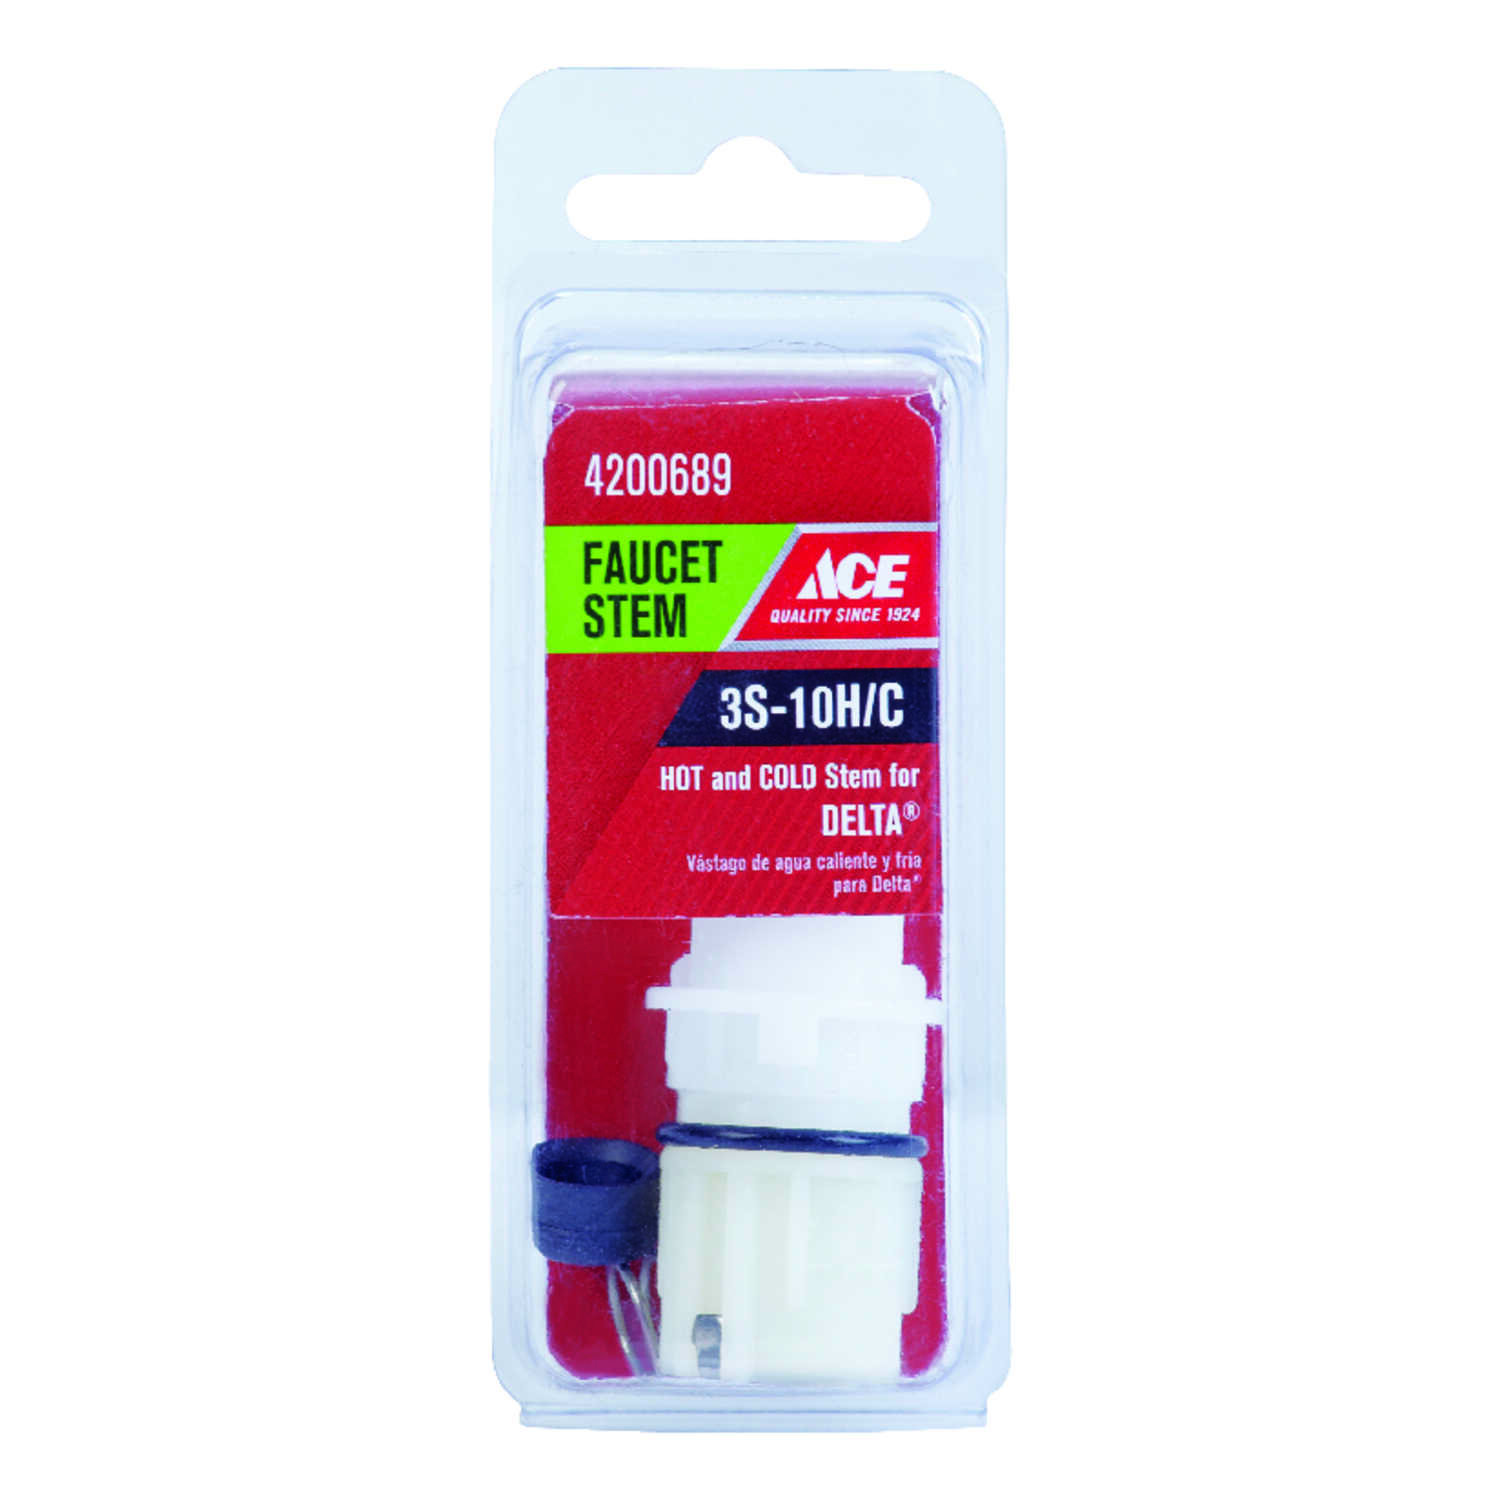 Ace  Hot and Cold  3S-10H/C  Faucet Stem  For Delta